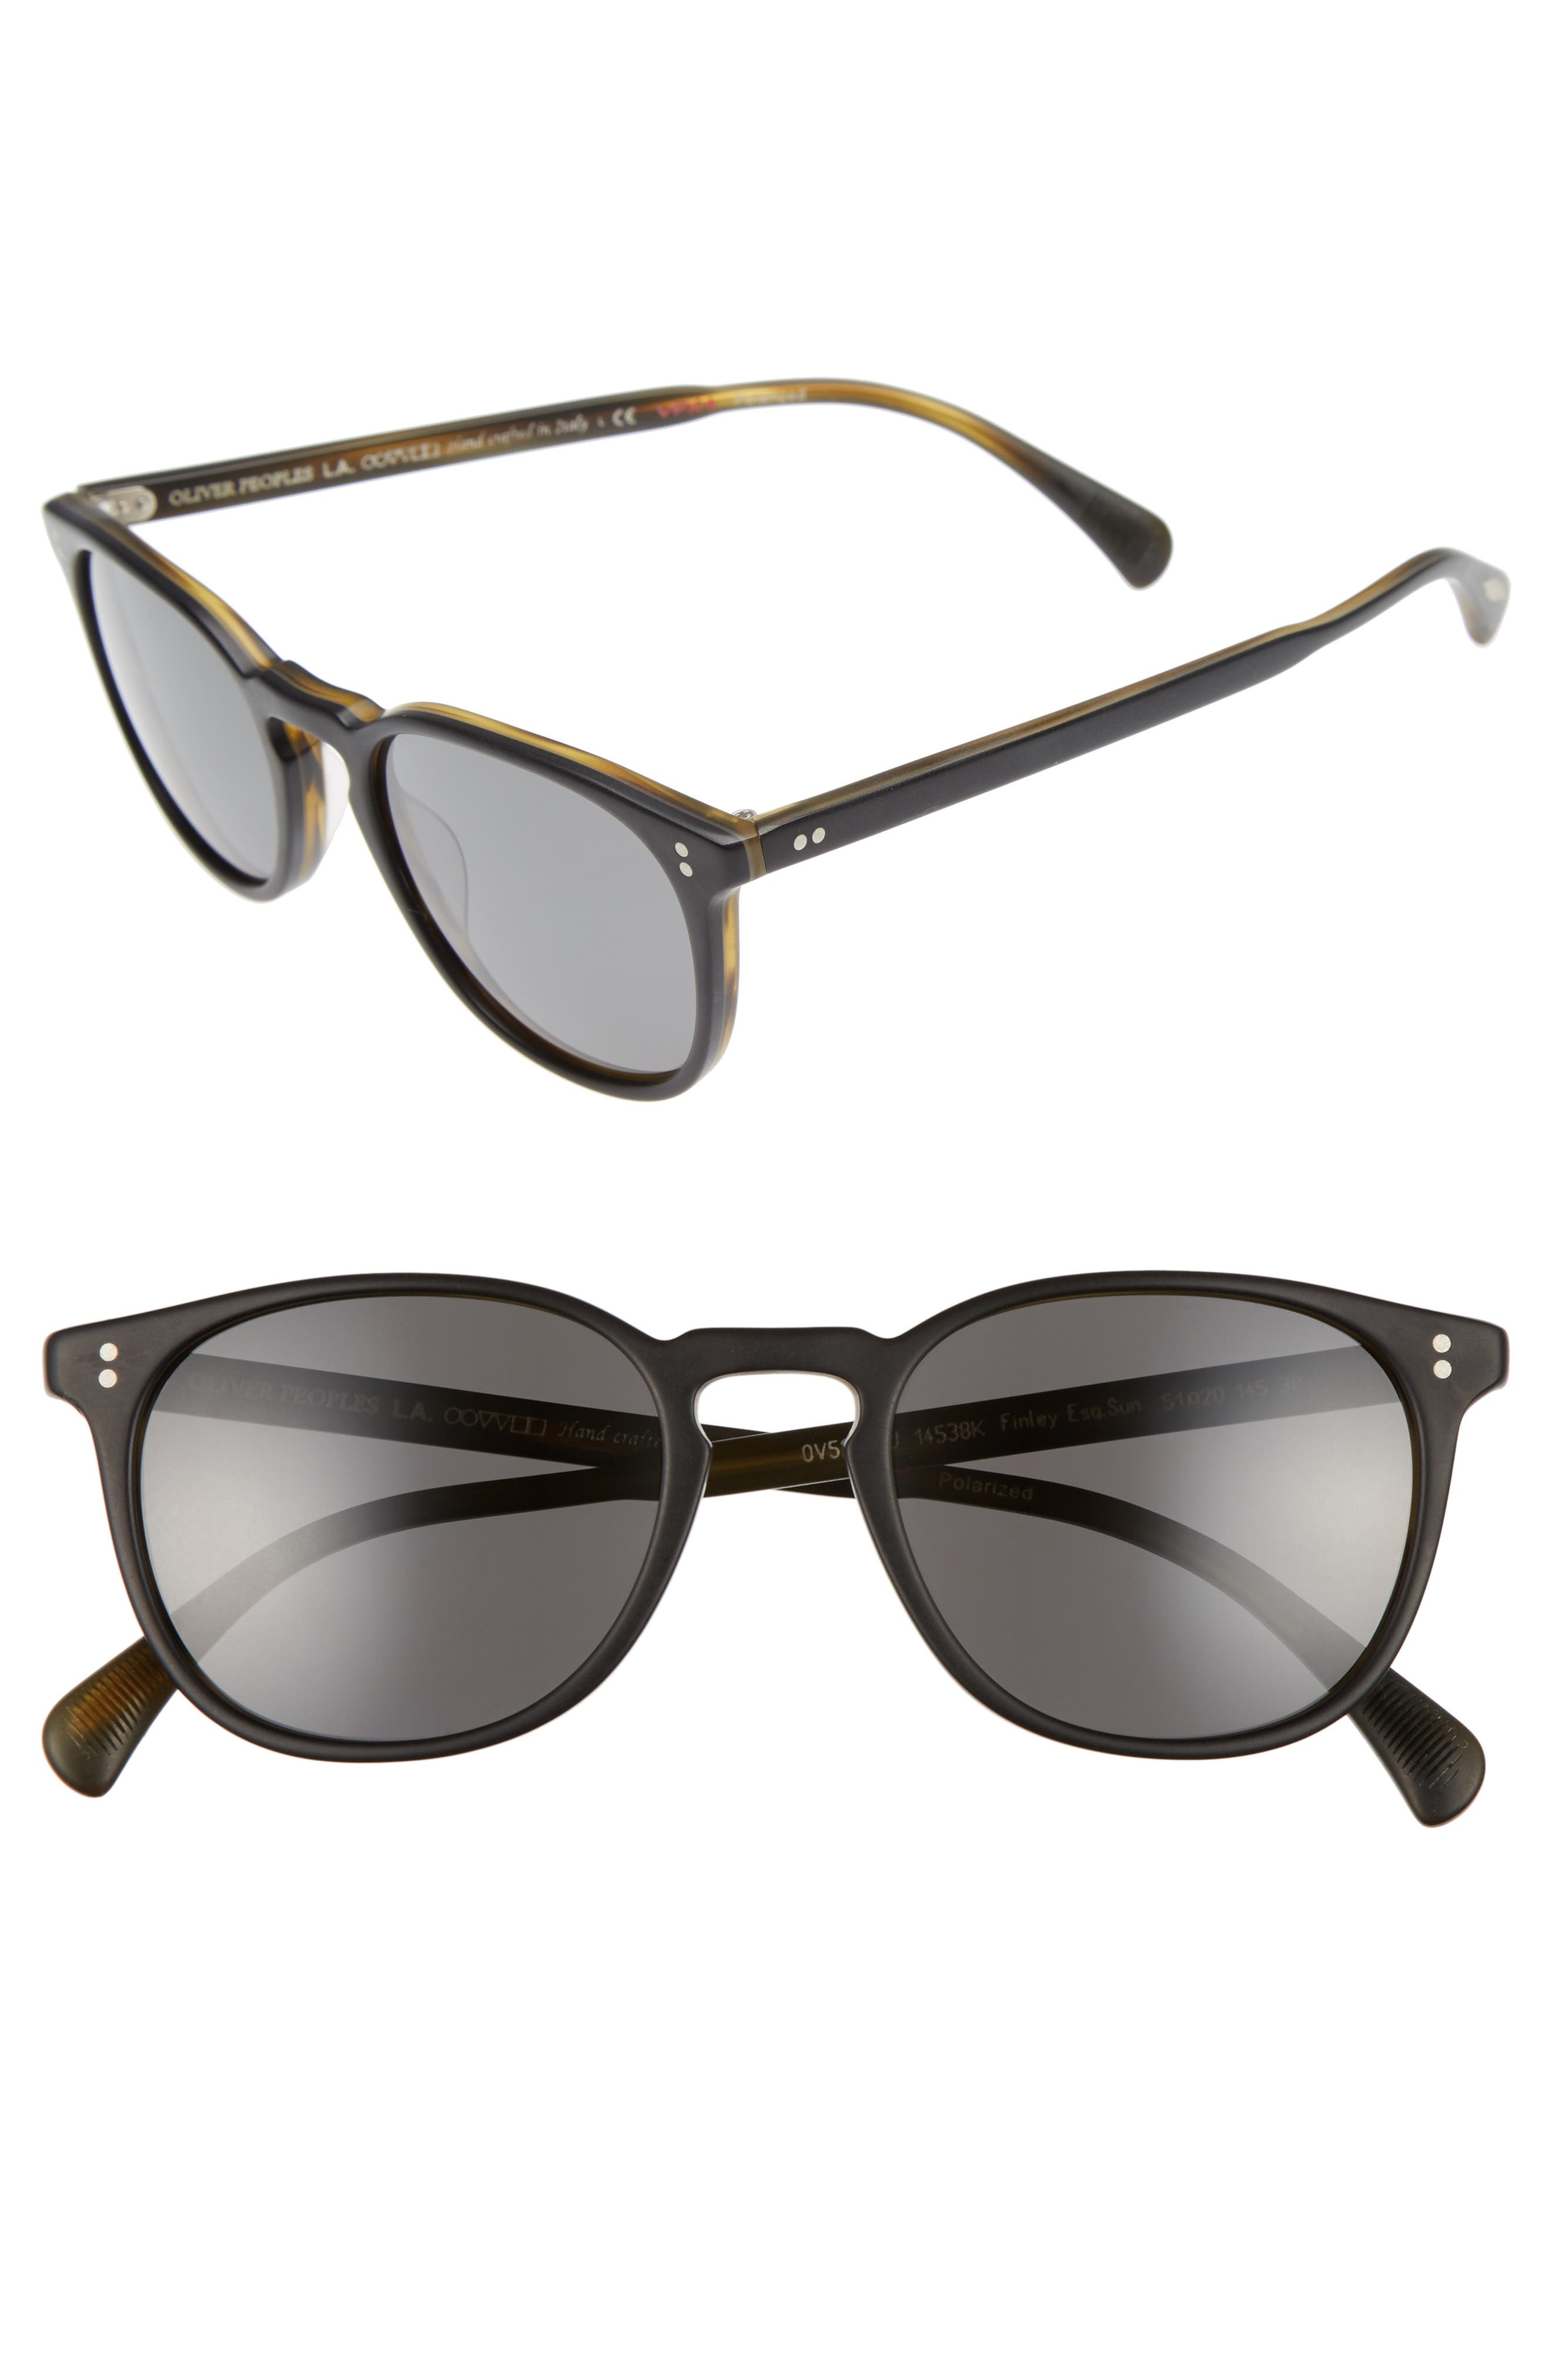 Oliver Peoples 'Finley' 51mm Retro Sunglasses